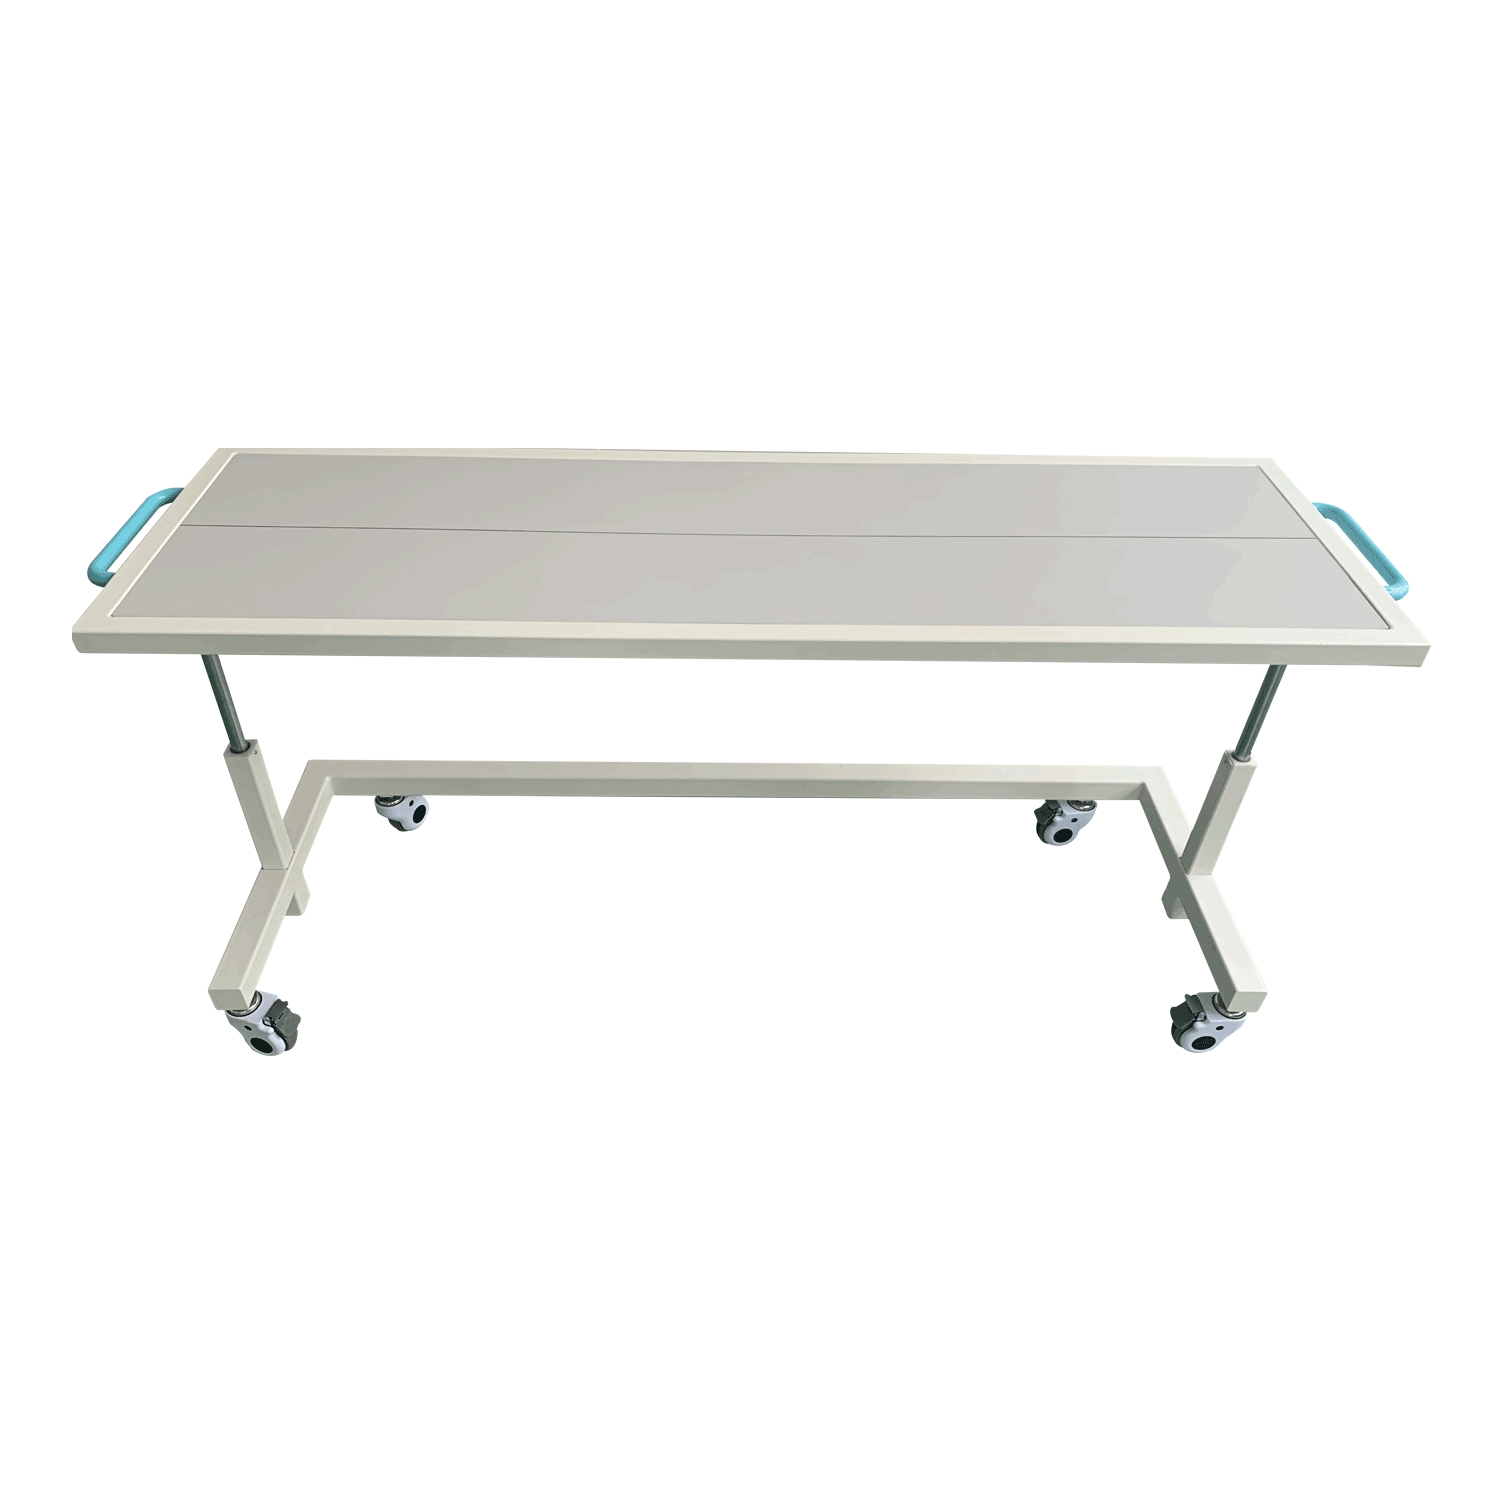 C-arm medical X-ray table